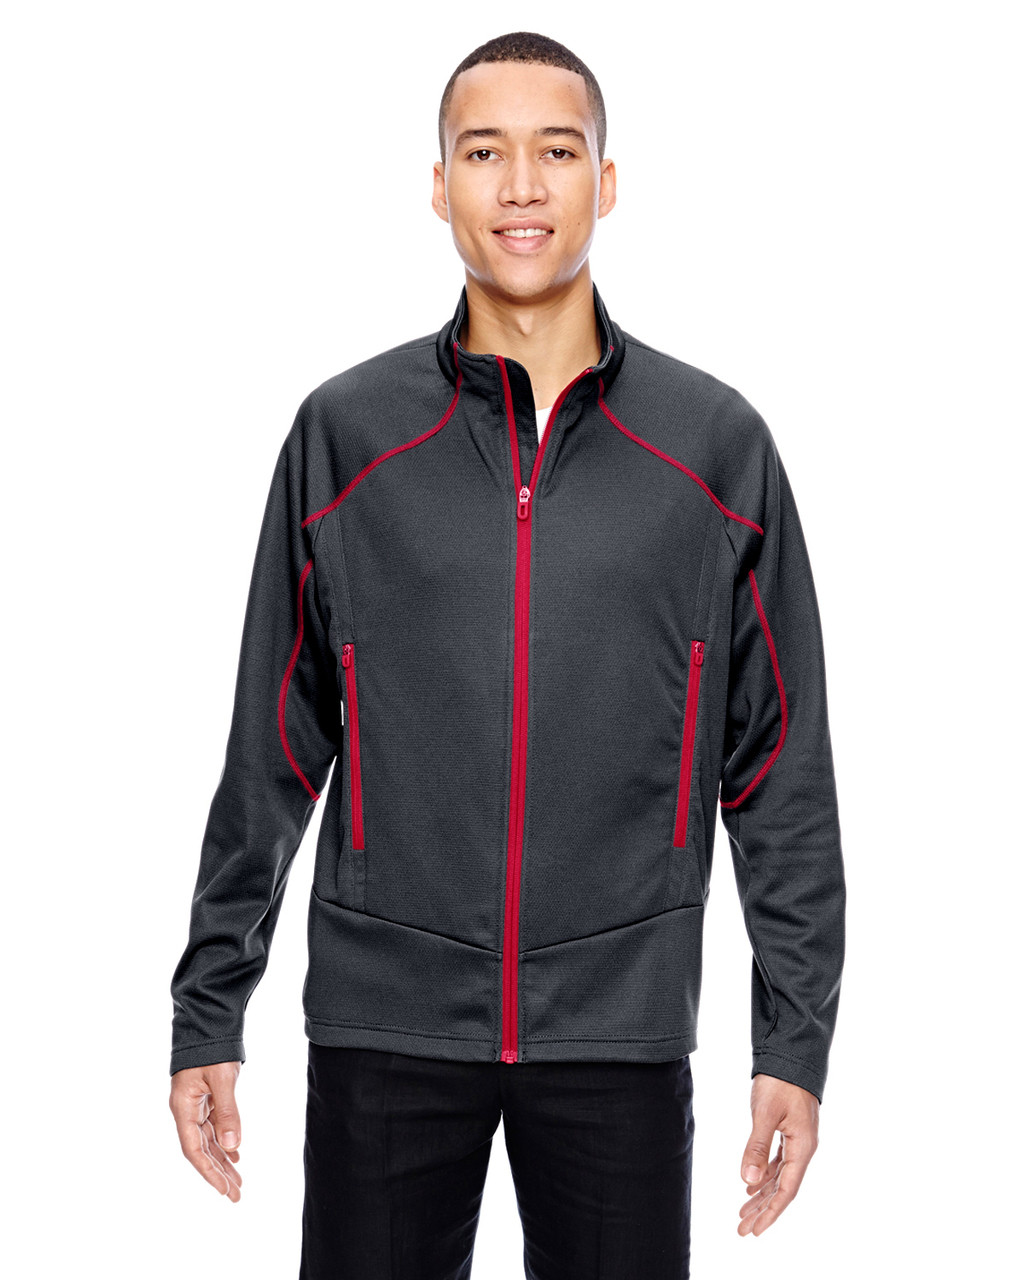 Carbon/Olympic Red - 88806 North End Sport Red Interactive Cadence Two-Tone Brush Back Jacket